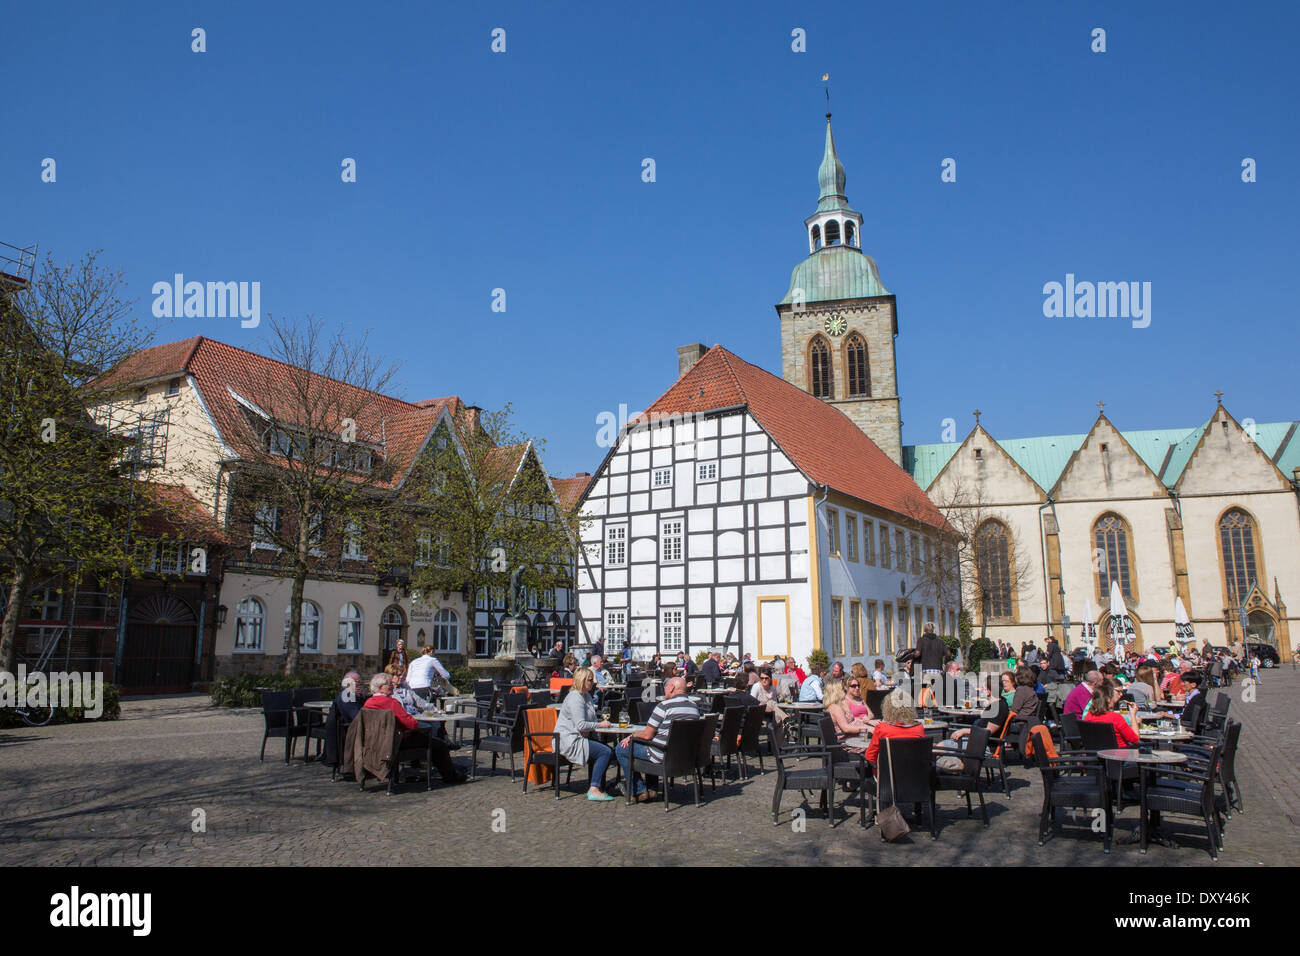 Town square in the German town of Wiedenbrück, Nordrhein Westfalen, Germany - Stock Image